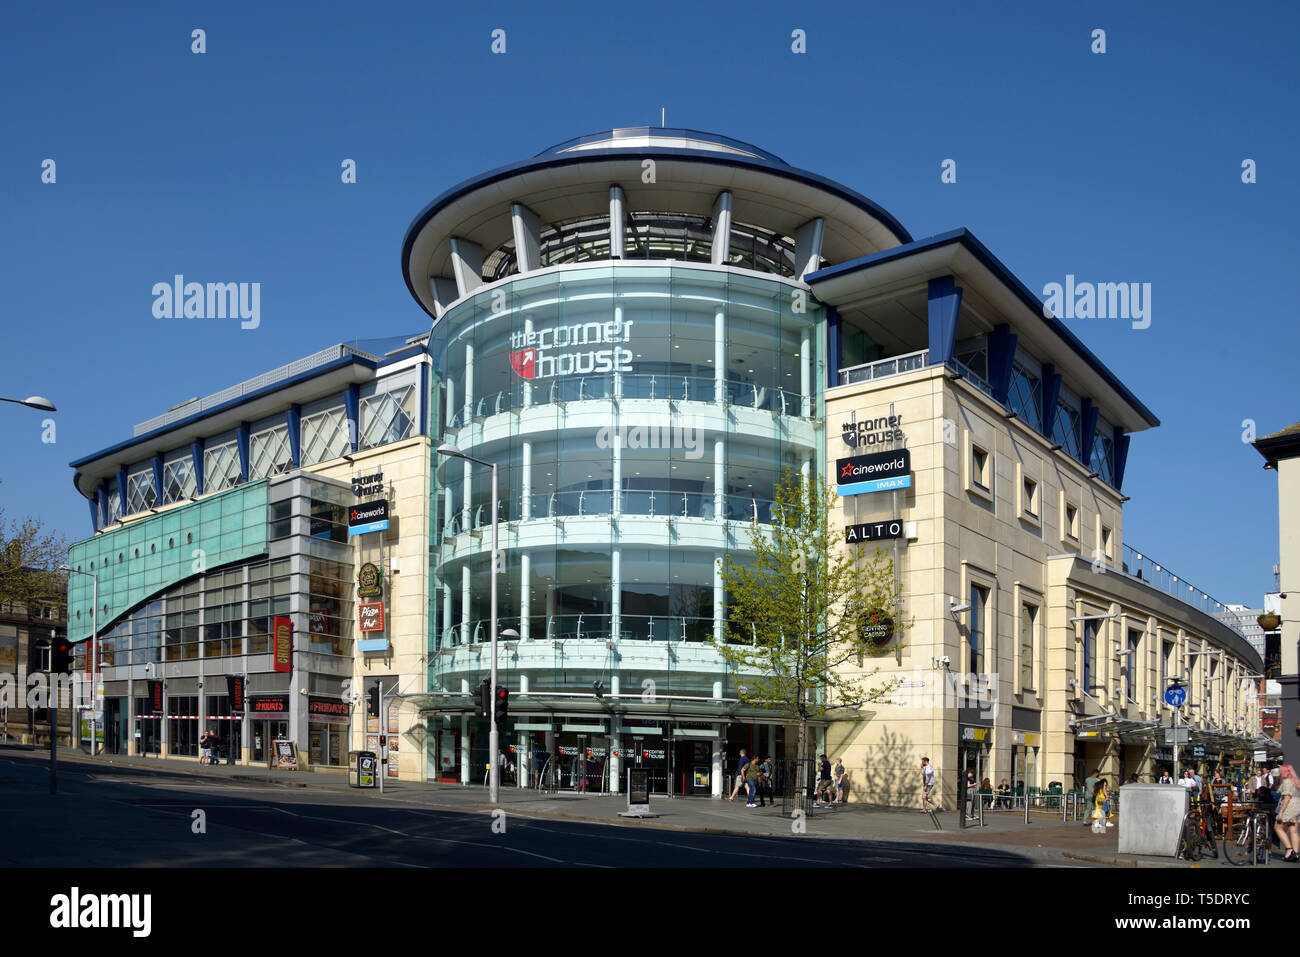 Corner House, entertainment centre, Nottingham. - Stock Image